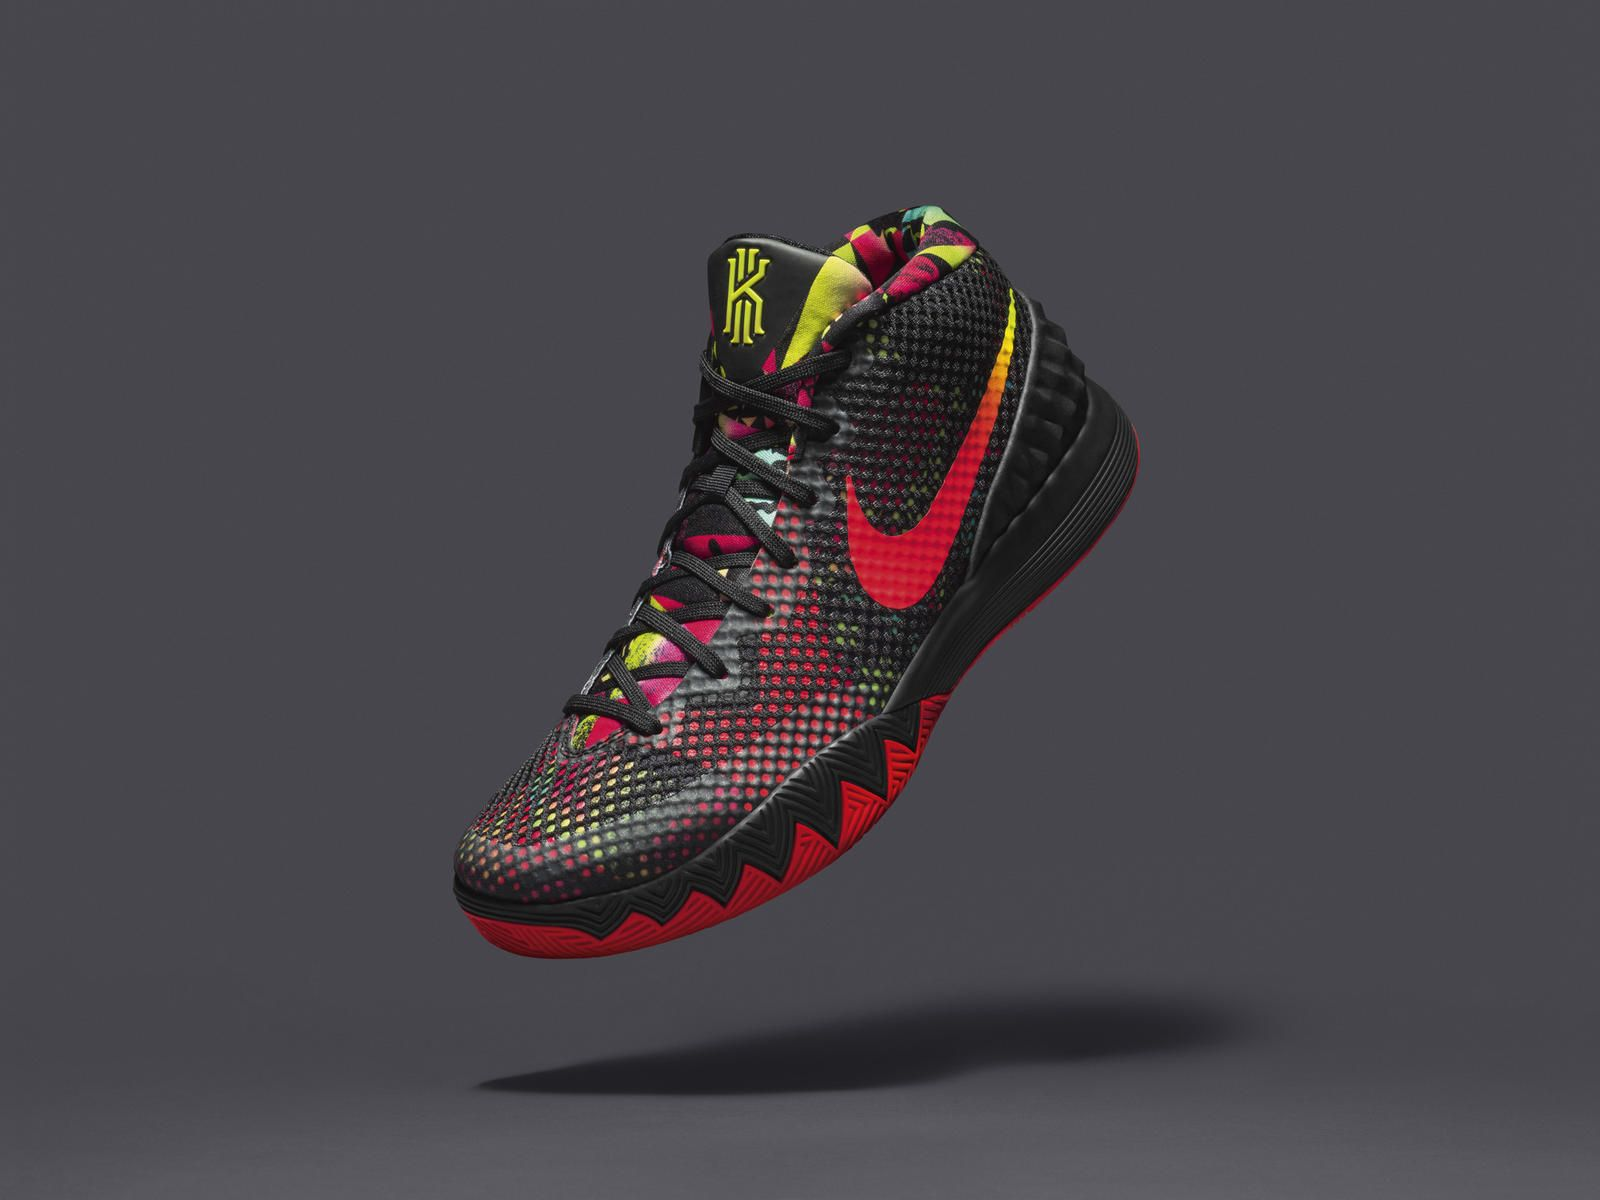 e404909f9e92 Nike News - Nike Welcomes Kyrie Irving to its Esteemed Signature Athlete  Family